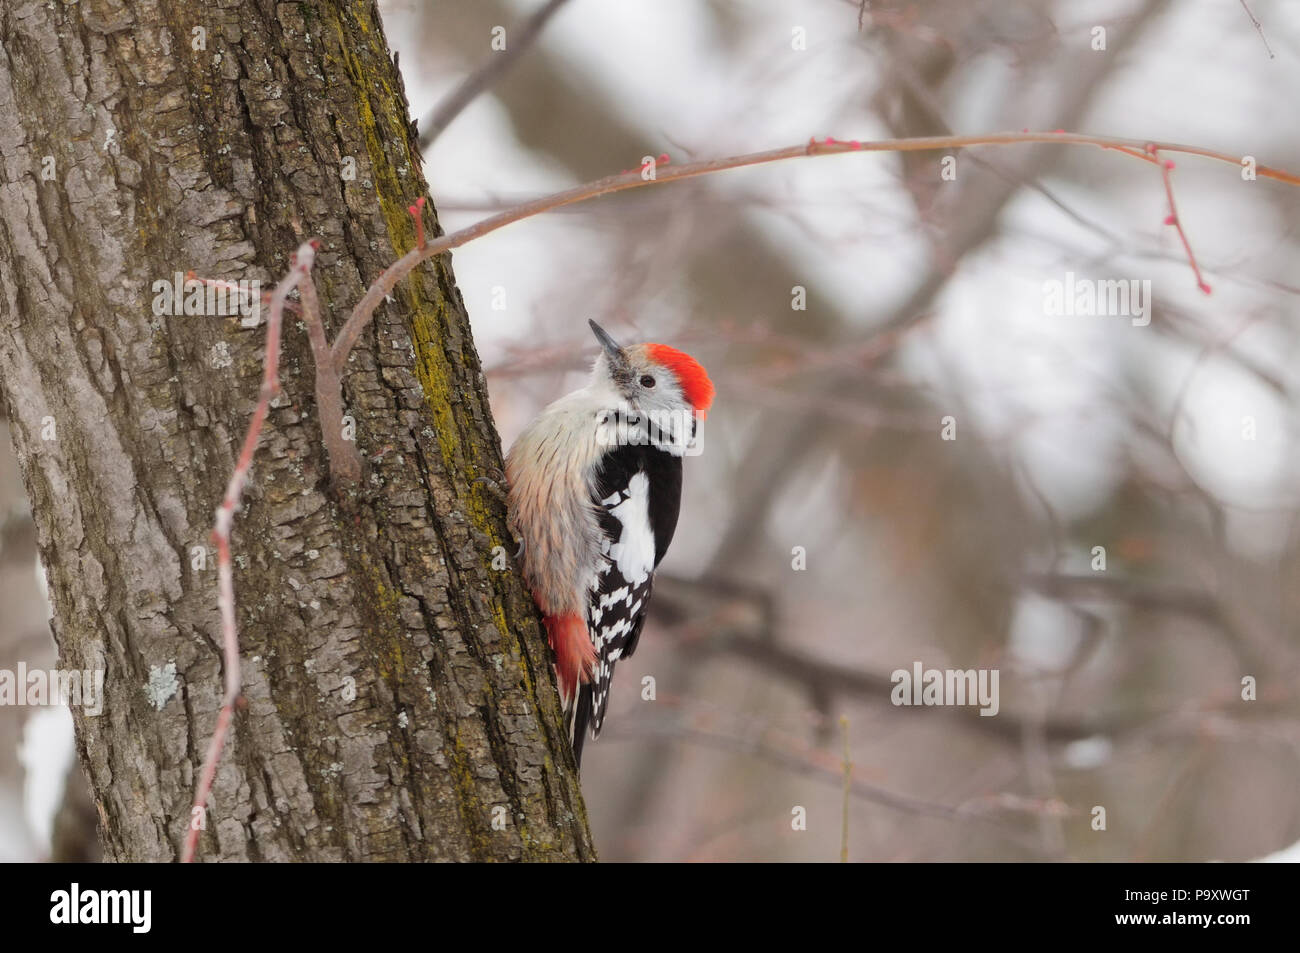 Middle spotted woodpecker (Dendrocoptes medius) siting on a tree on a blurred forest background. Stock Photo